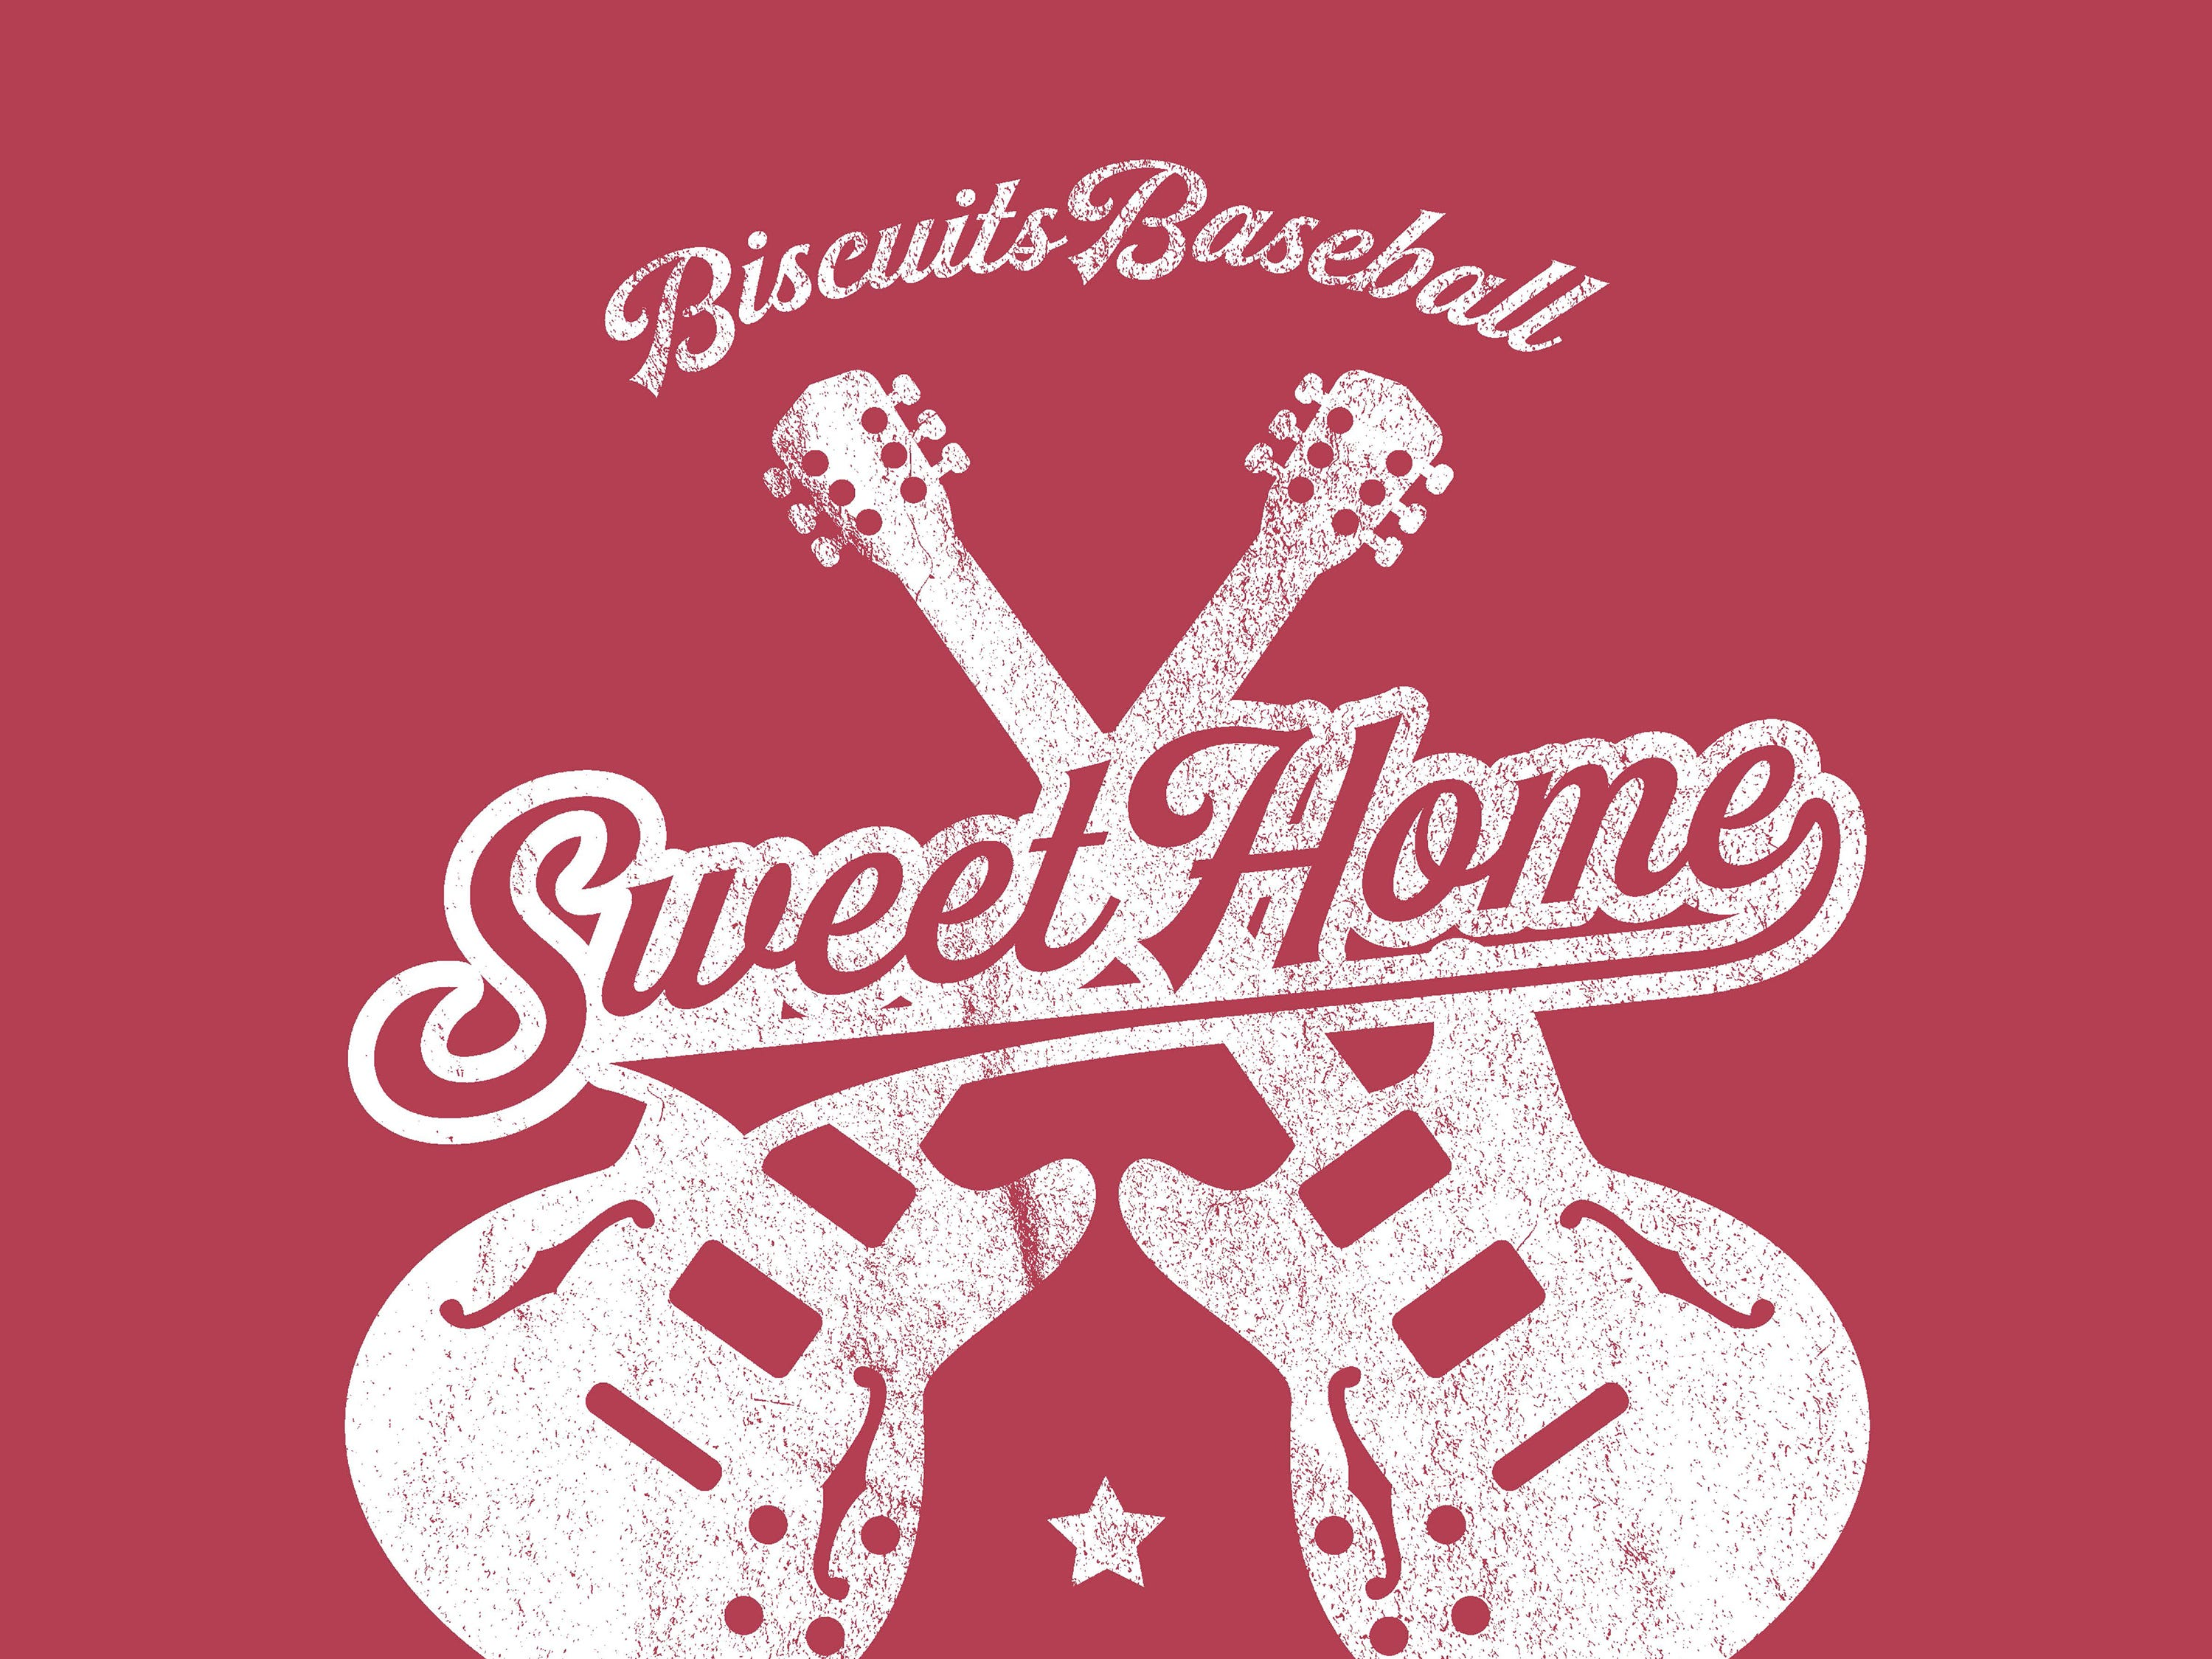 Montgomery Biscuits free t-shirt giveaway design for Southern Rock Night on Thursday, May 23, 2019.